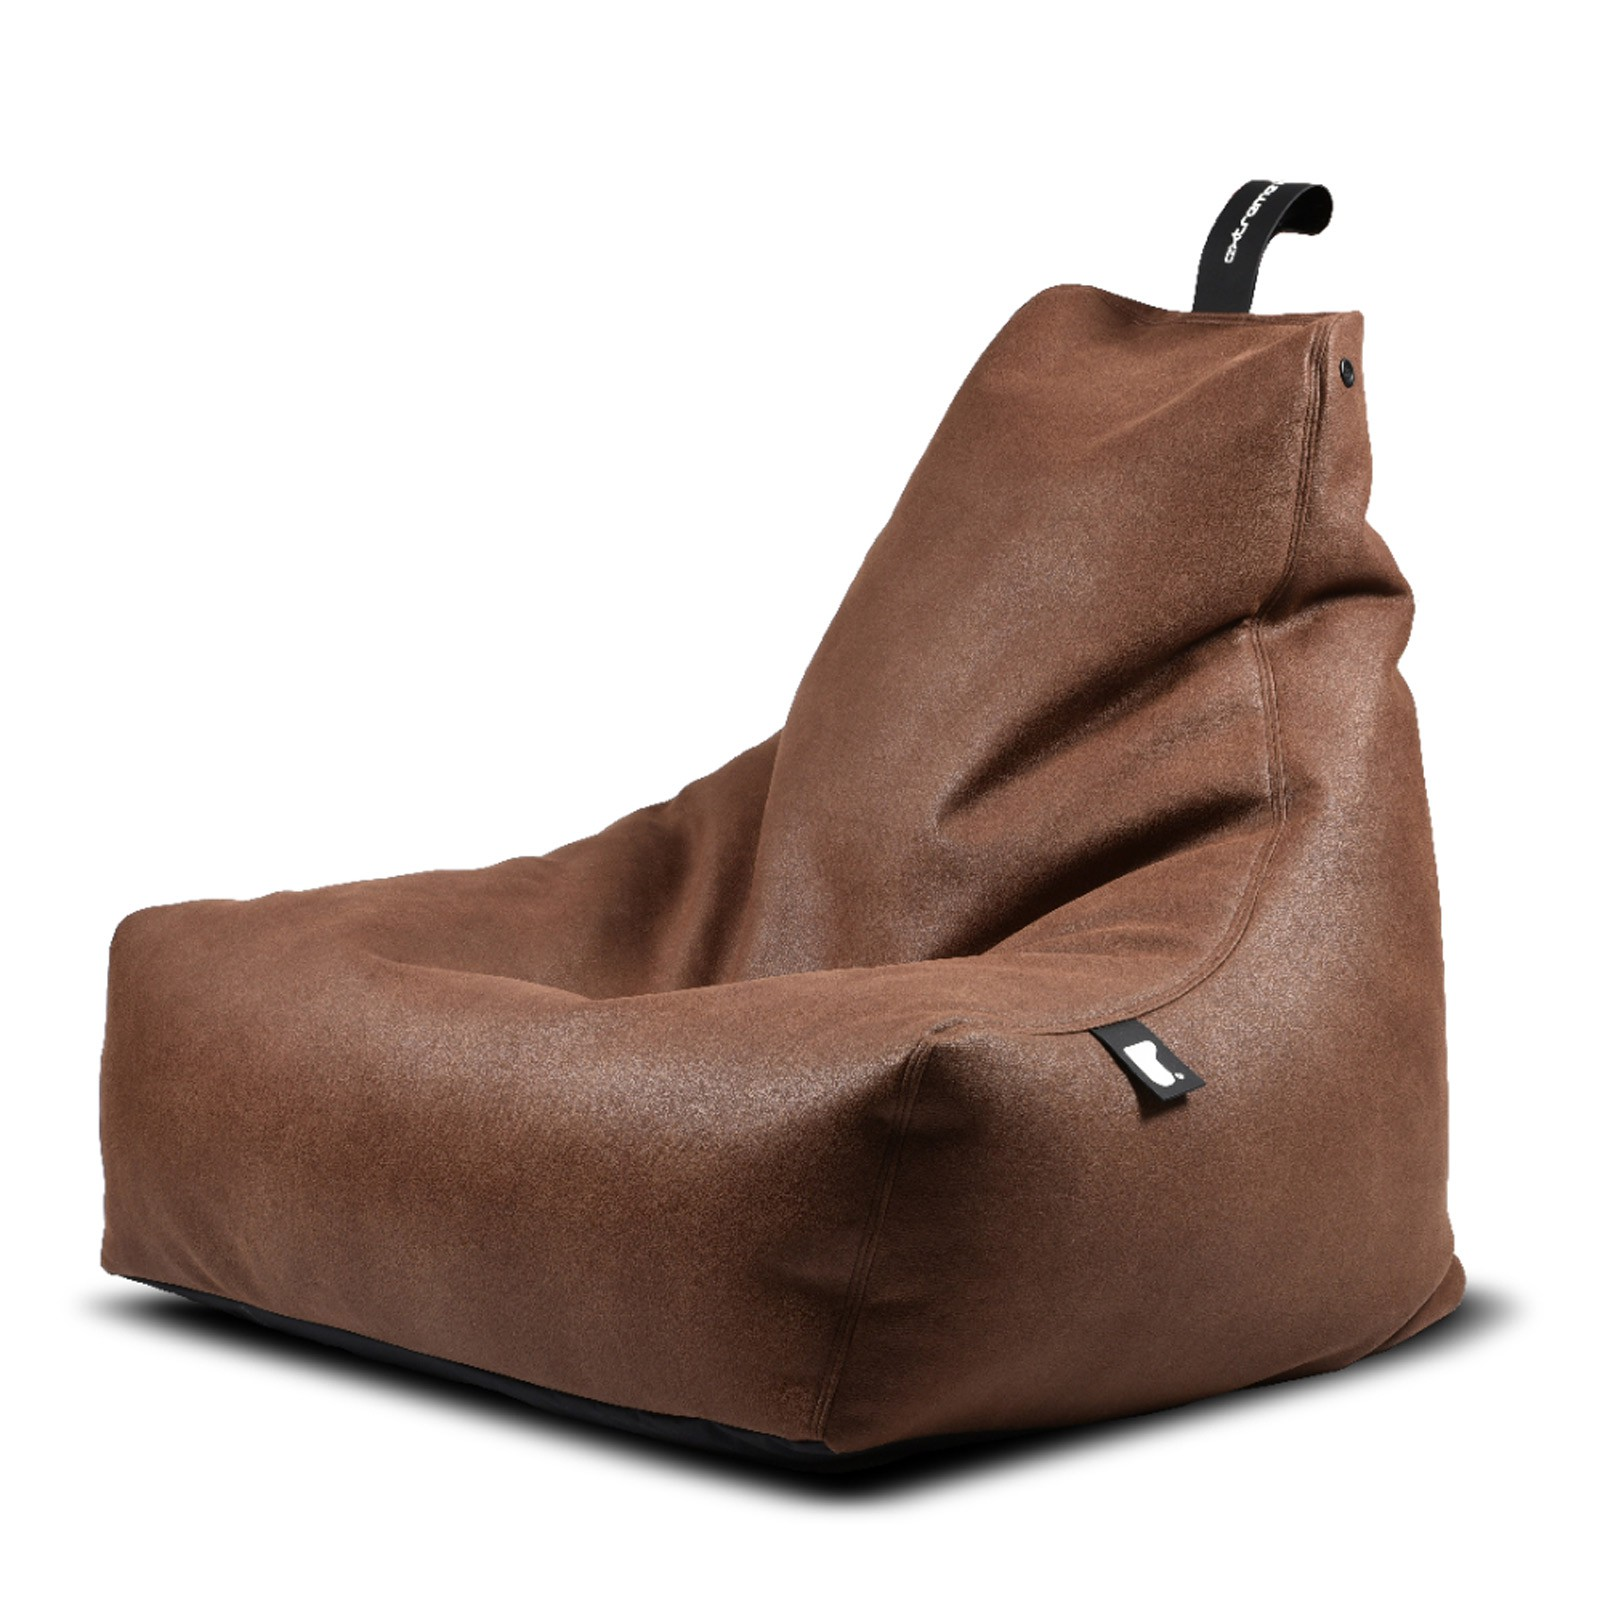 b-bag Extreme Lounging Sitzsack Lederoptik mighty-b, Farbe Chestnut